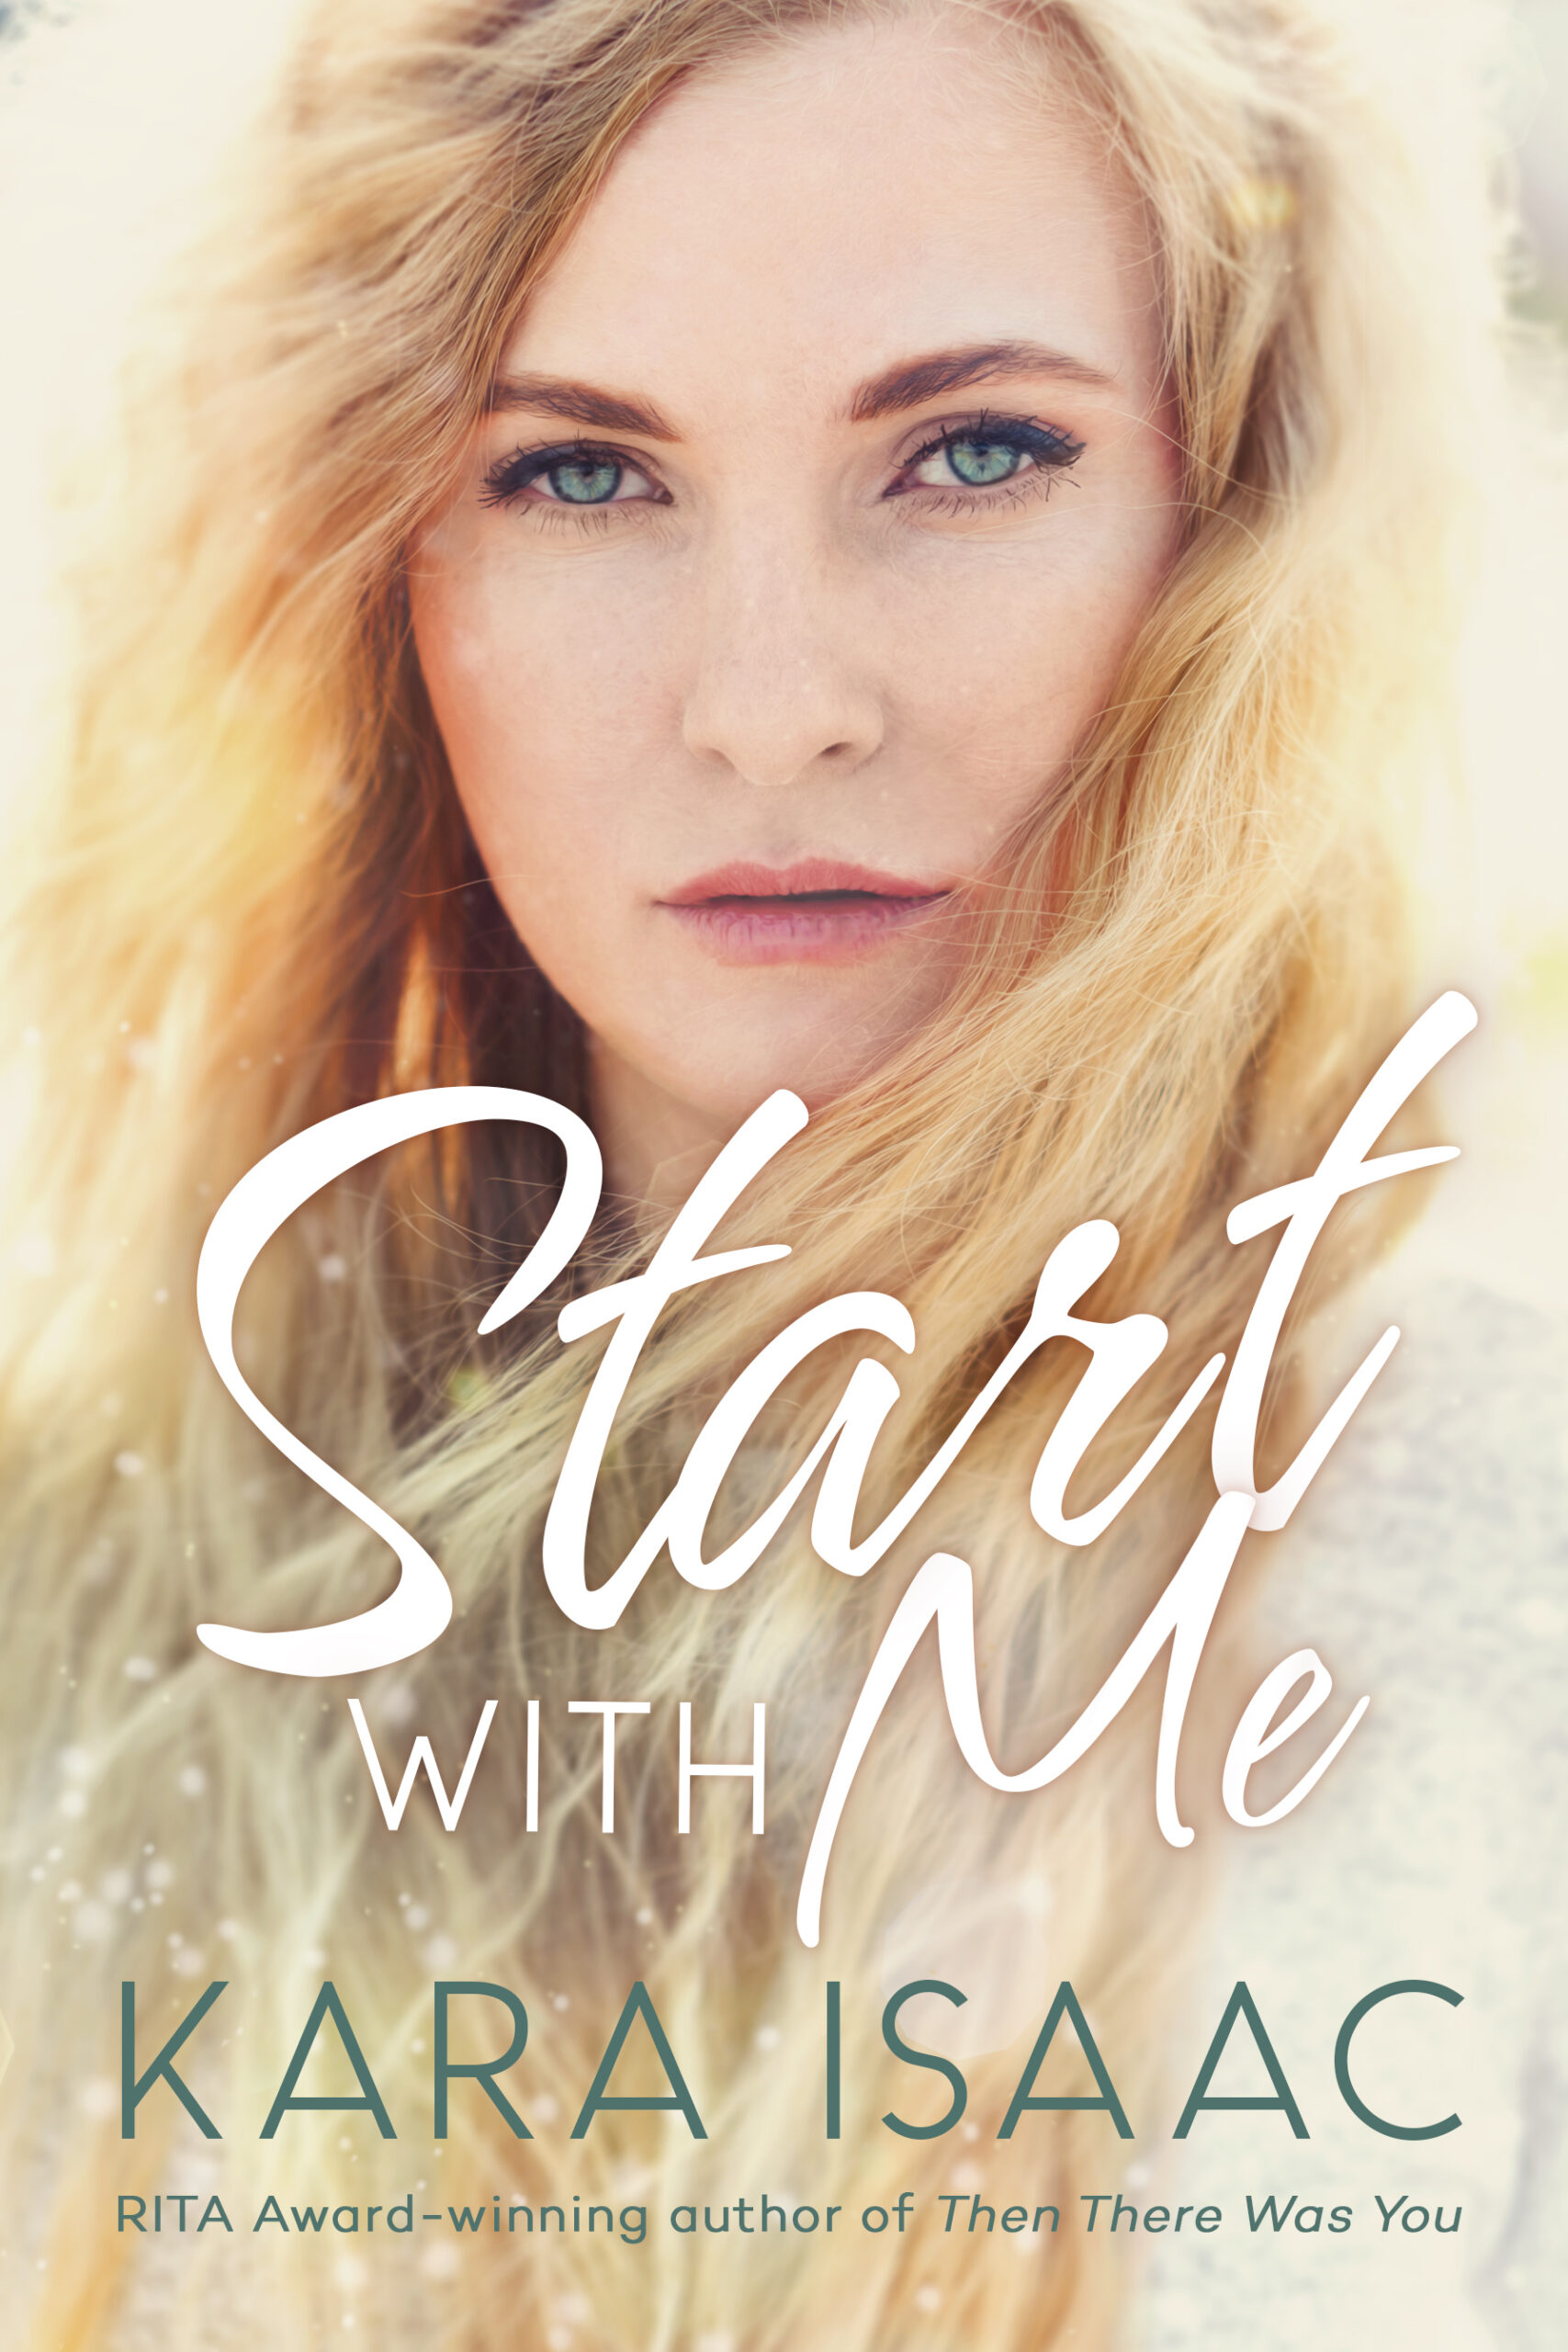 Start With Me book cover of a woman with blonde hair.